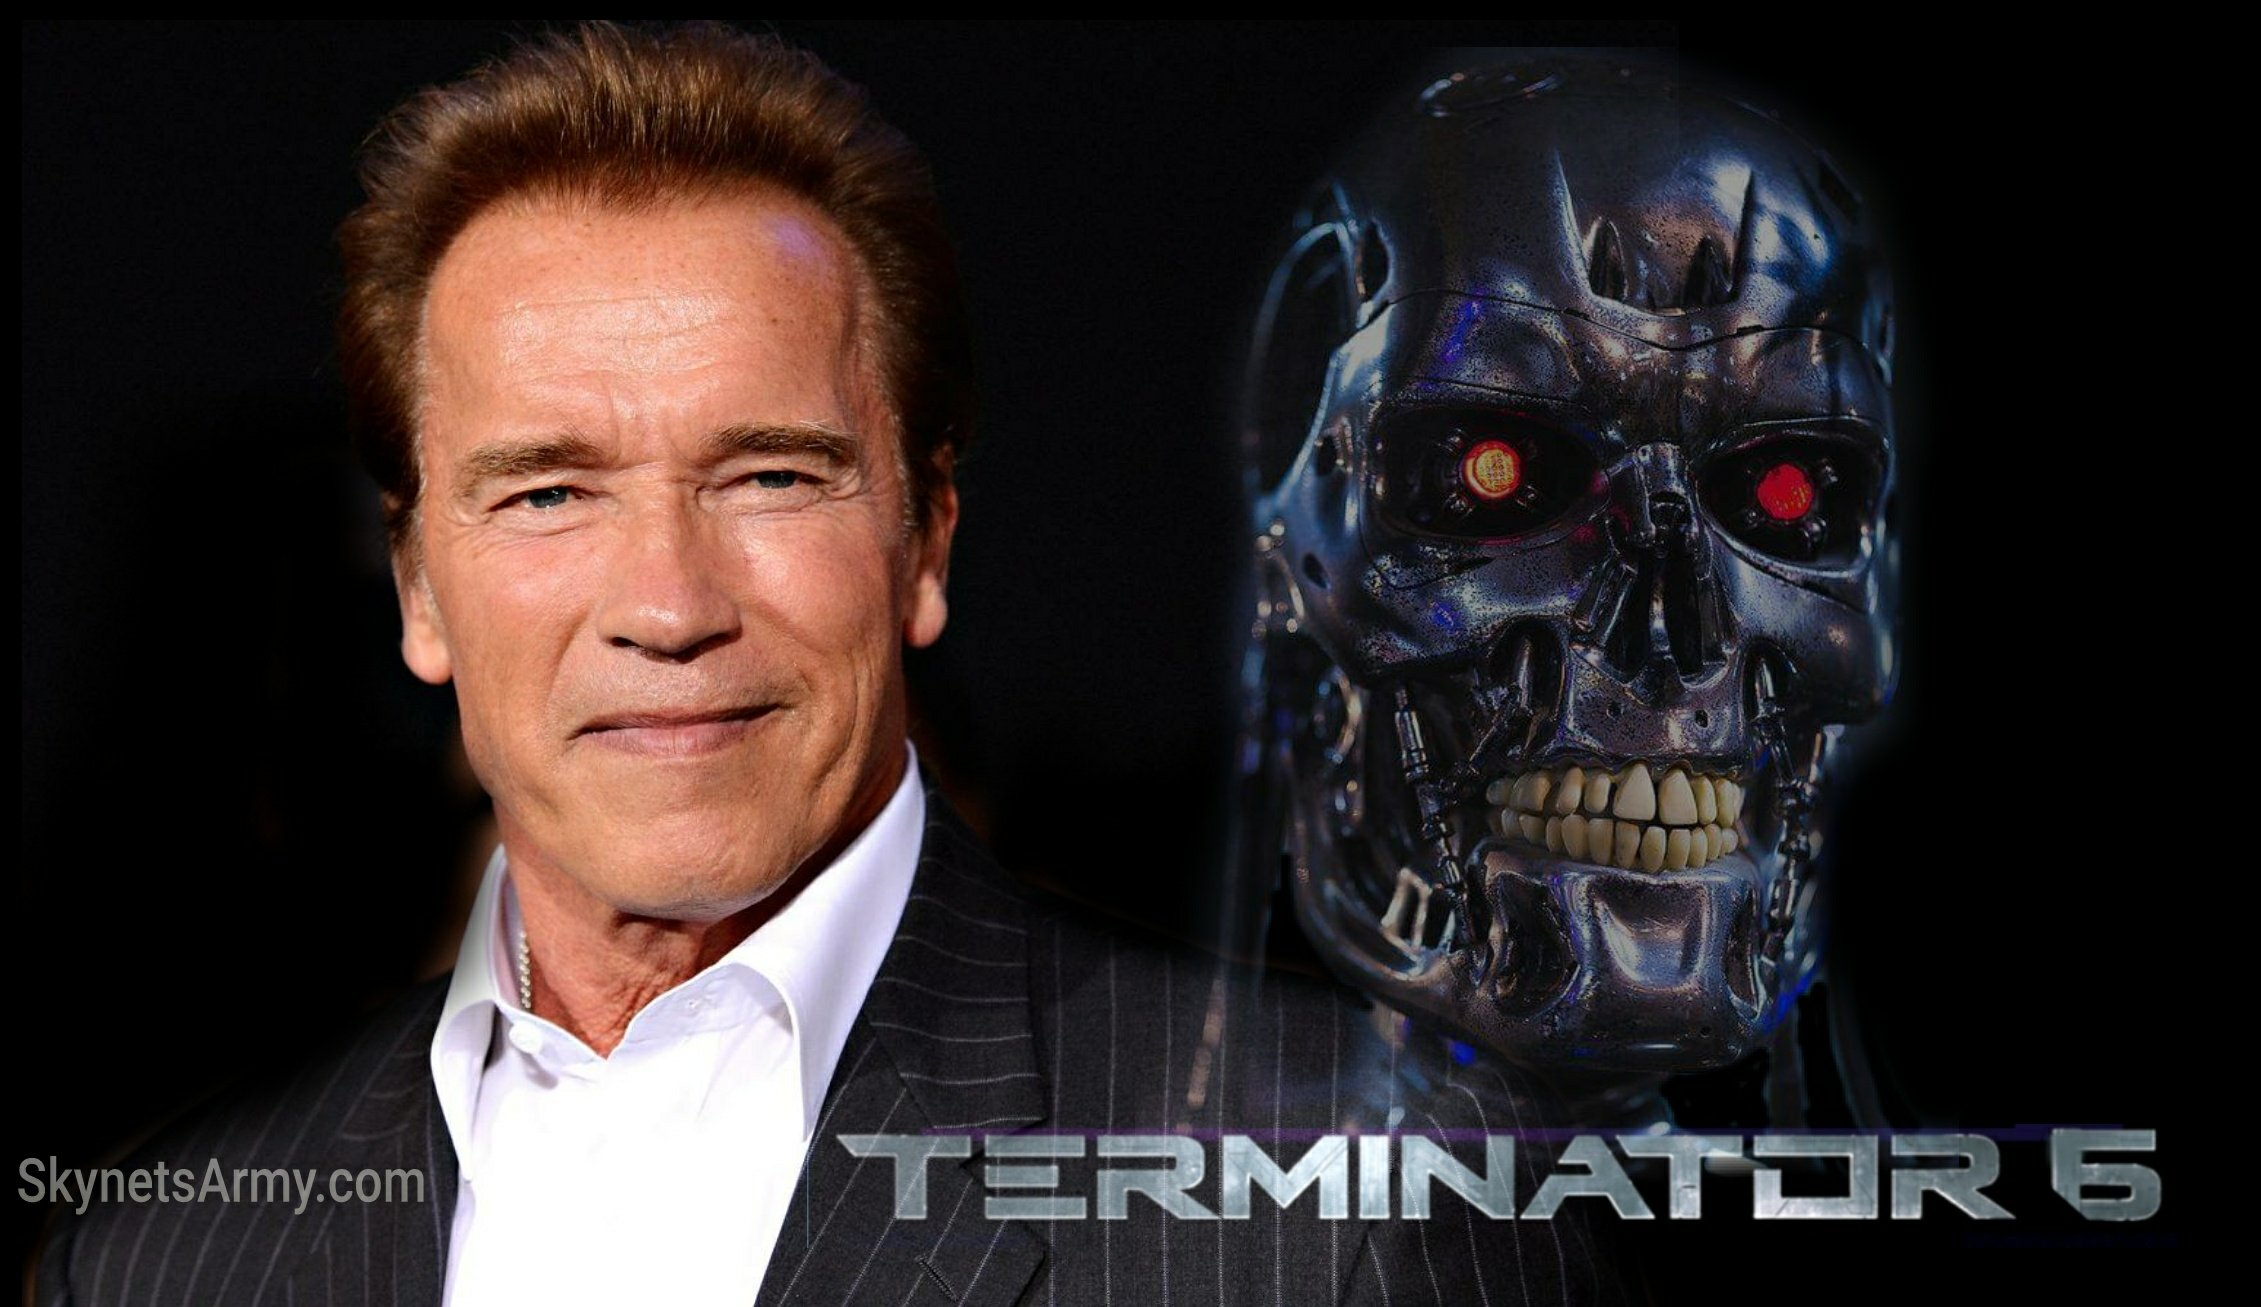 filming begins march 2018 for terminator 6 per arnold